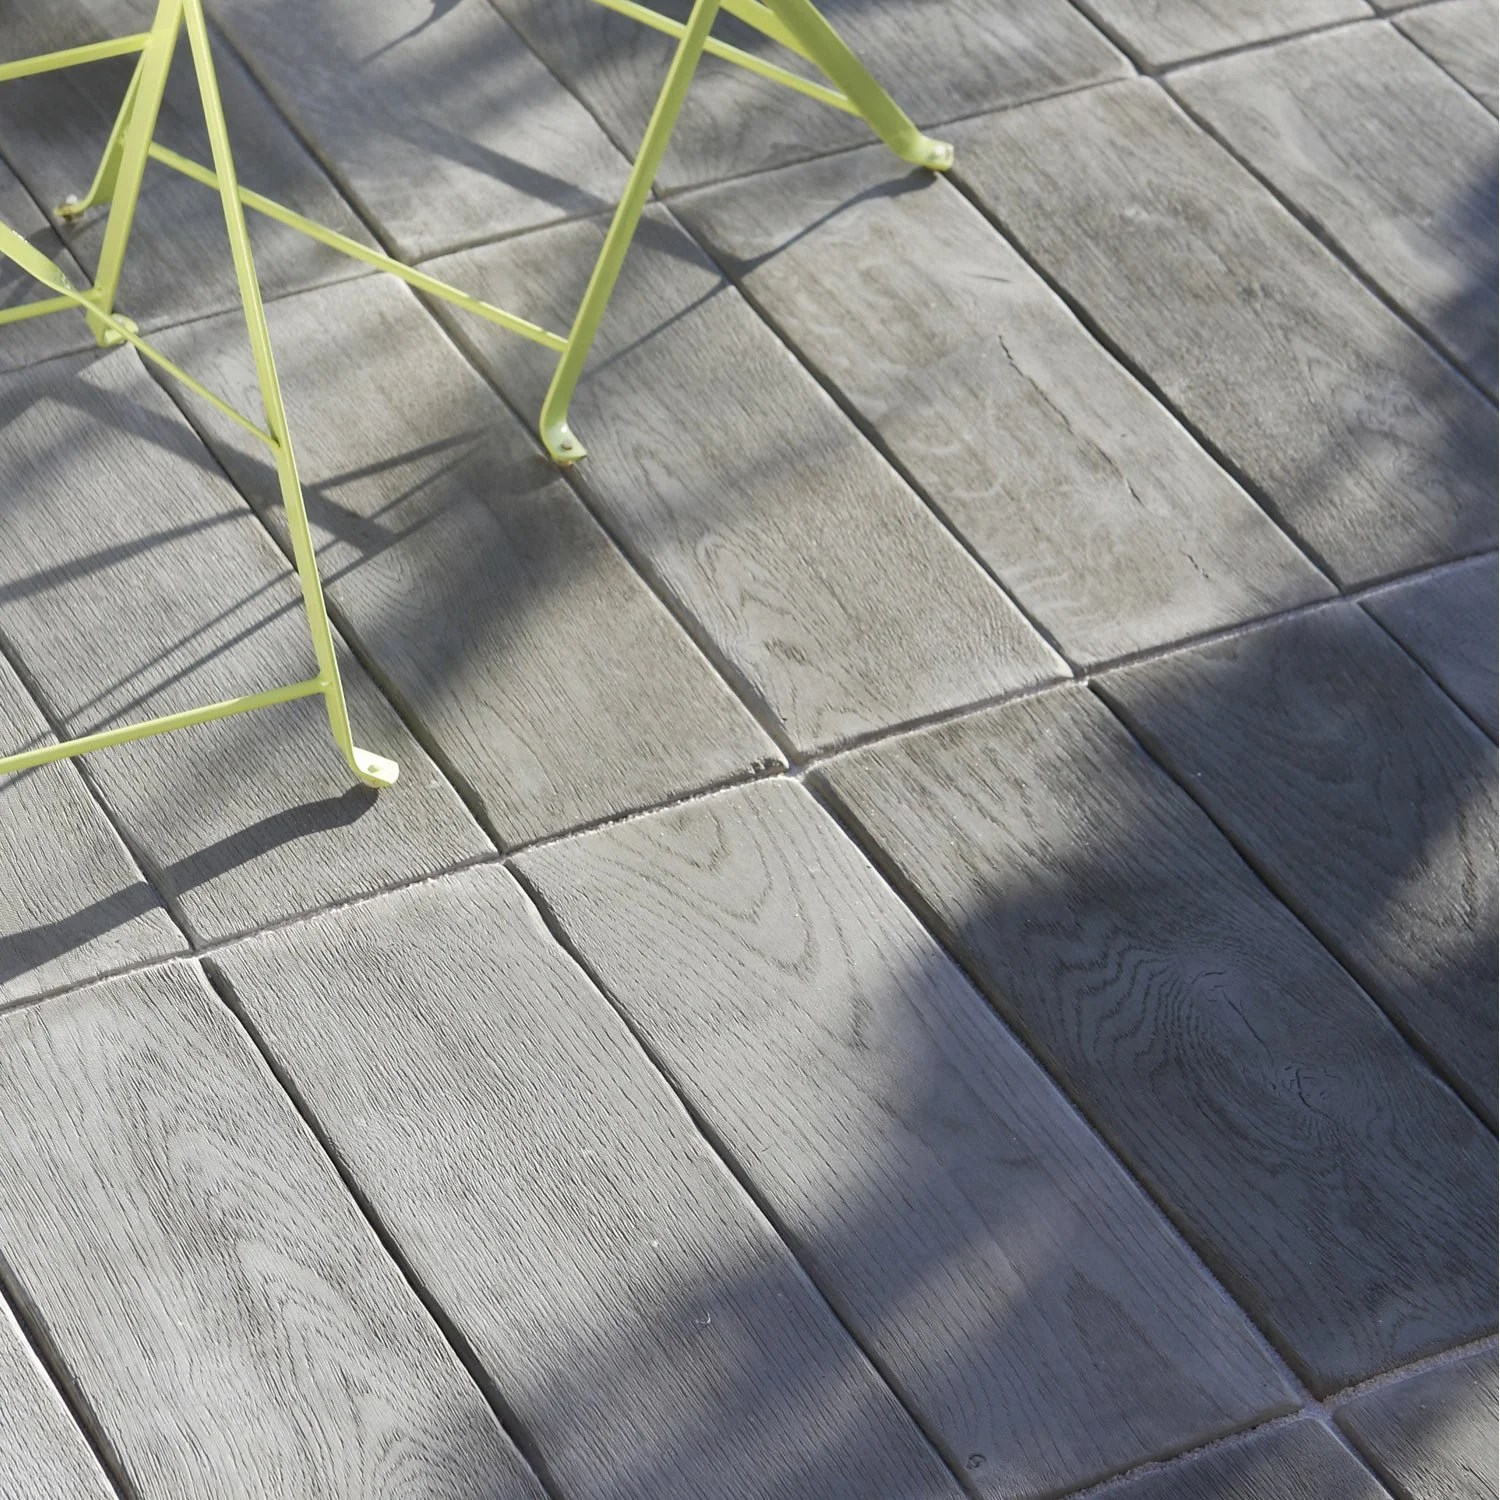 Dalle Beton Terrasse Leroy Merlin Dalle Terrasse Beton Leroy Merlin Reconquetefrancaise Fr